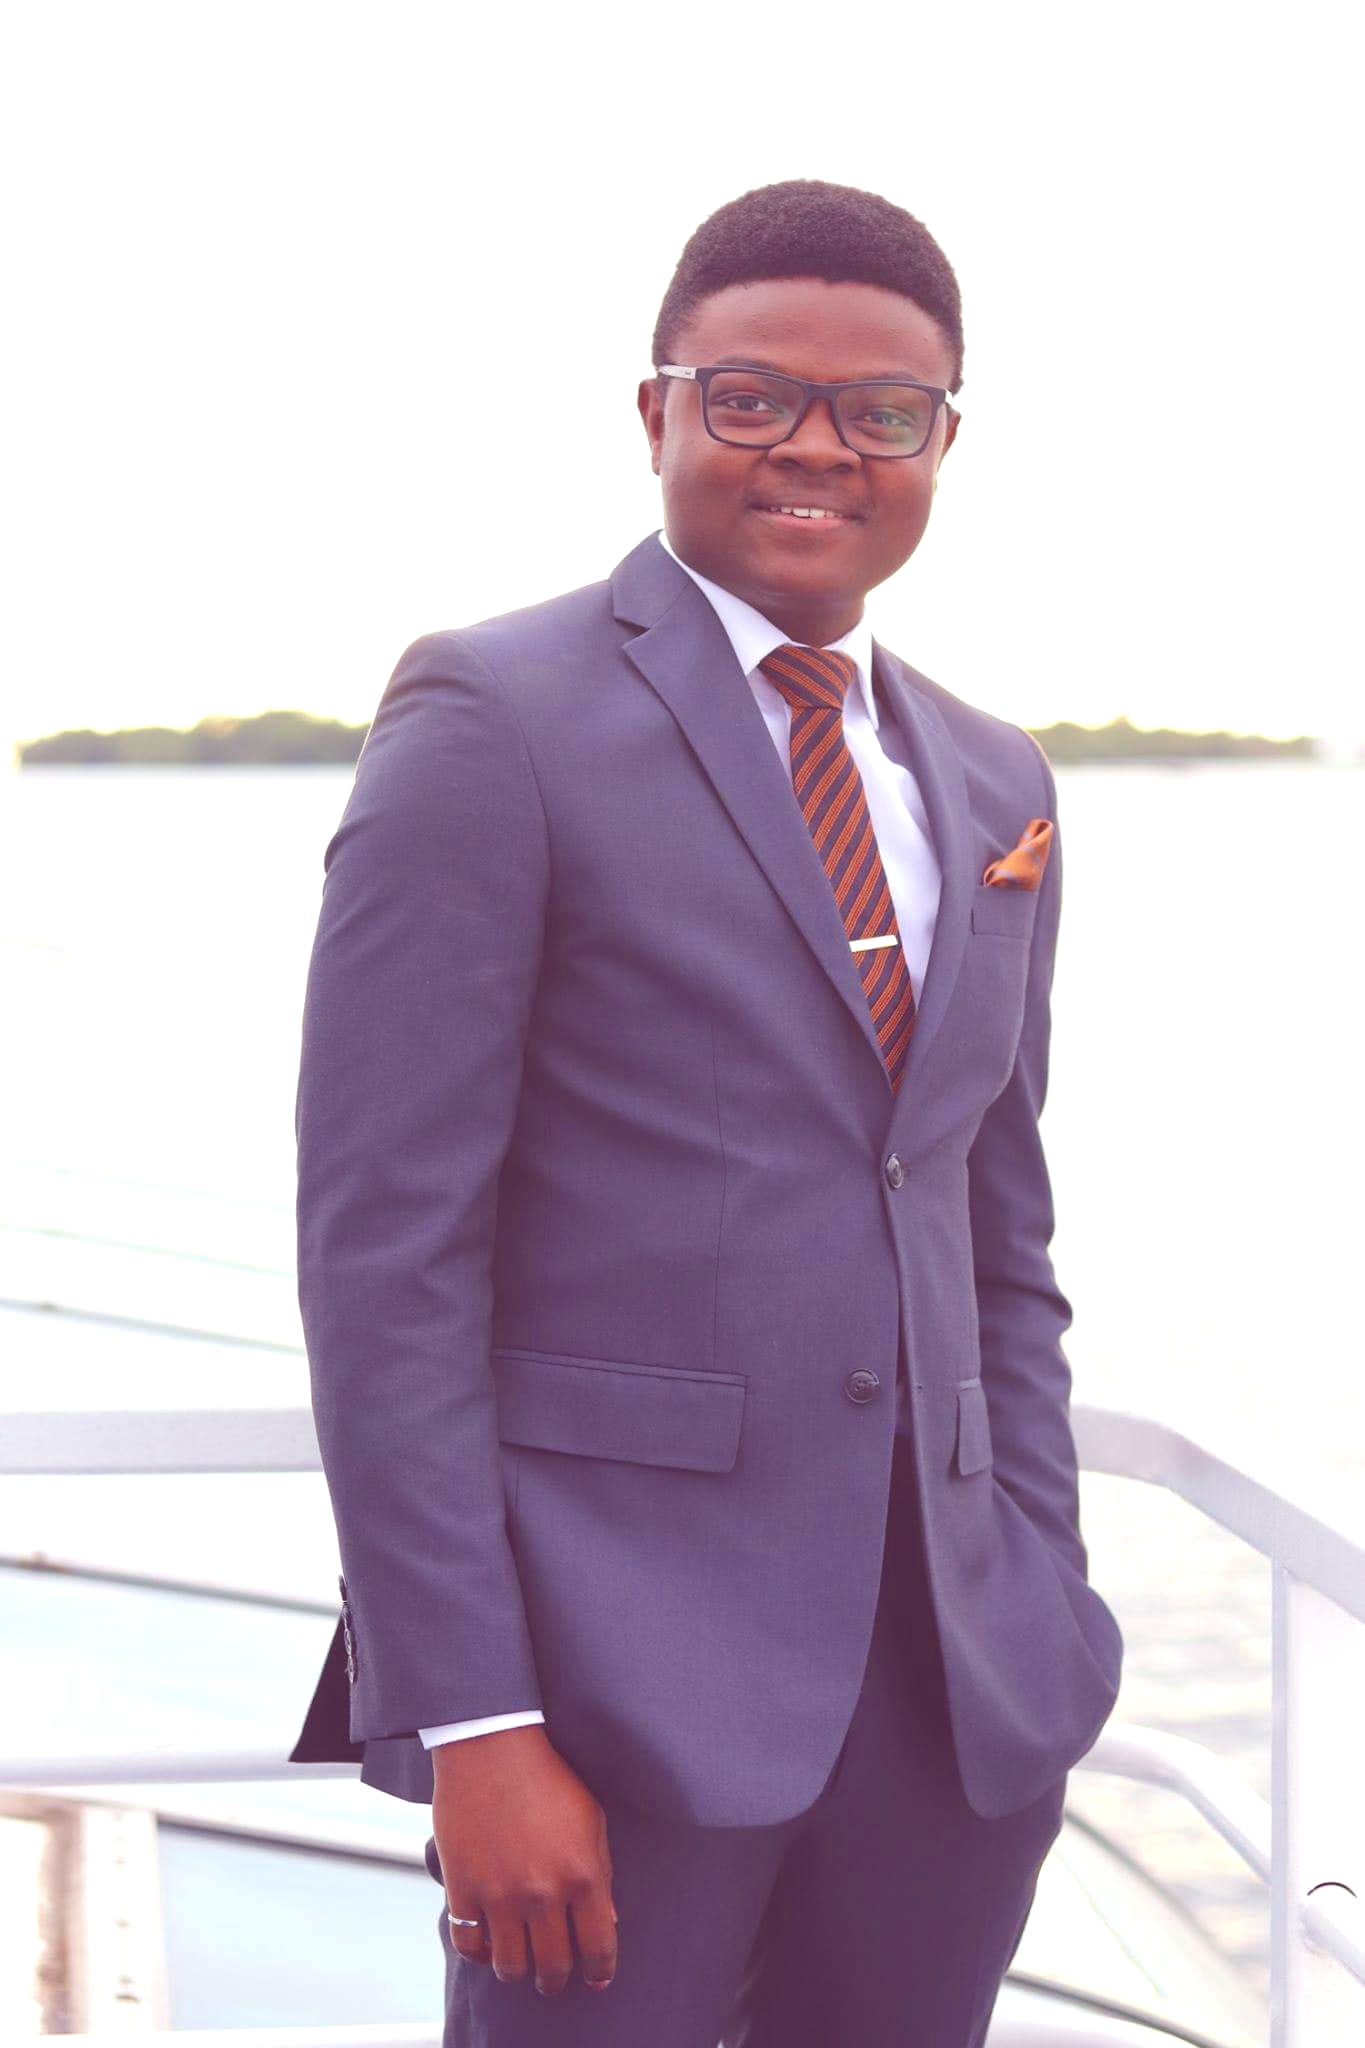 An image of Joseph Ojo in a suit on a boat.